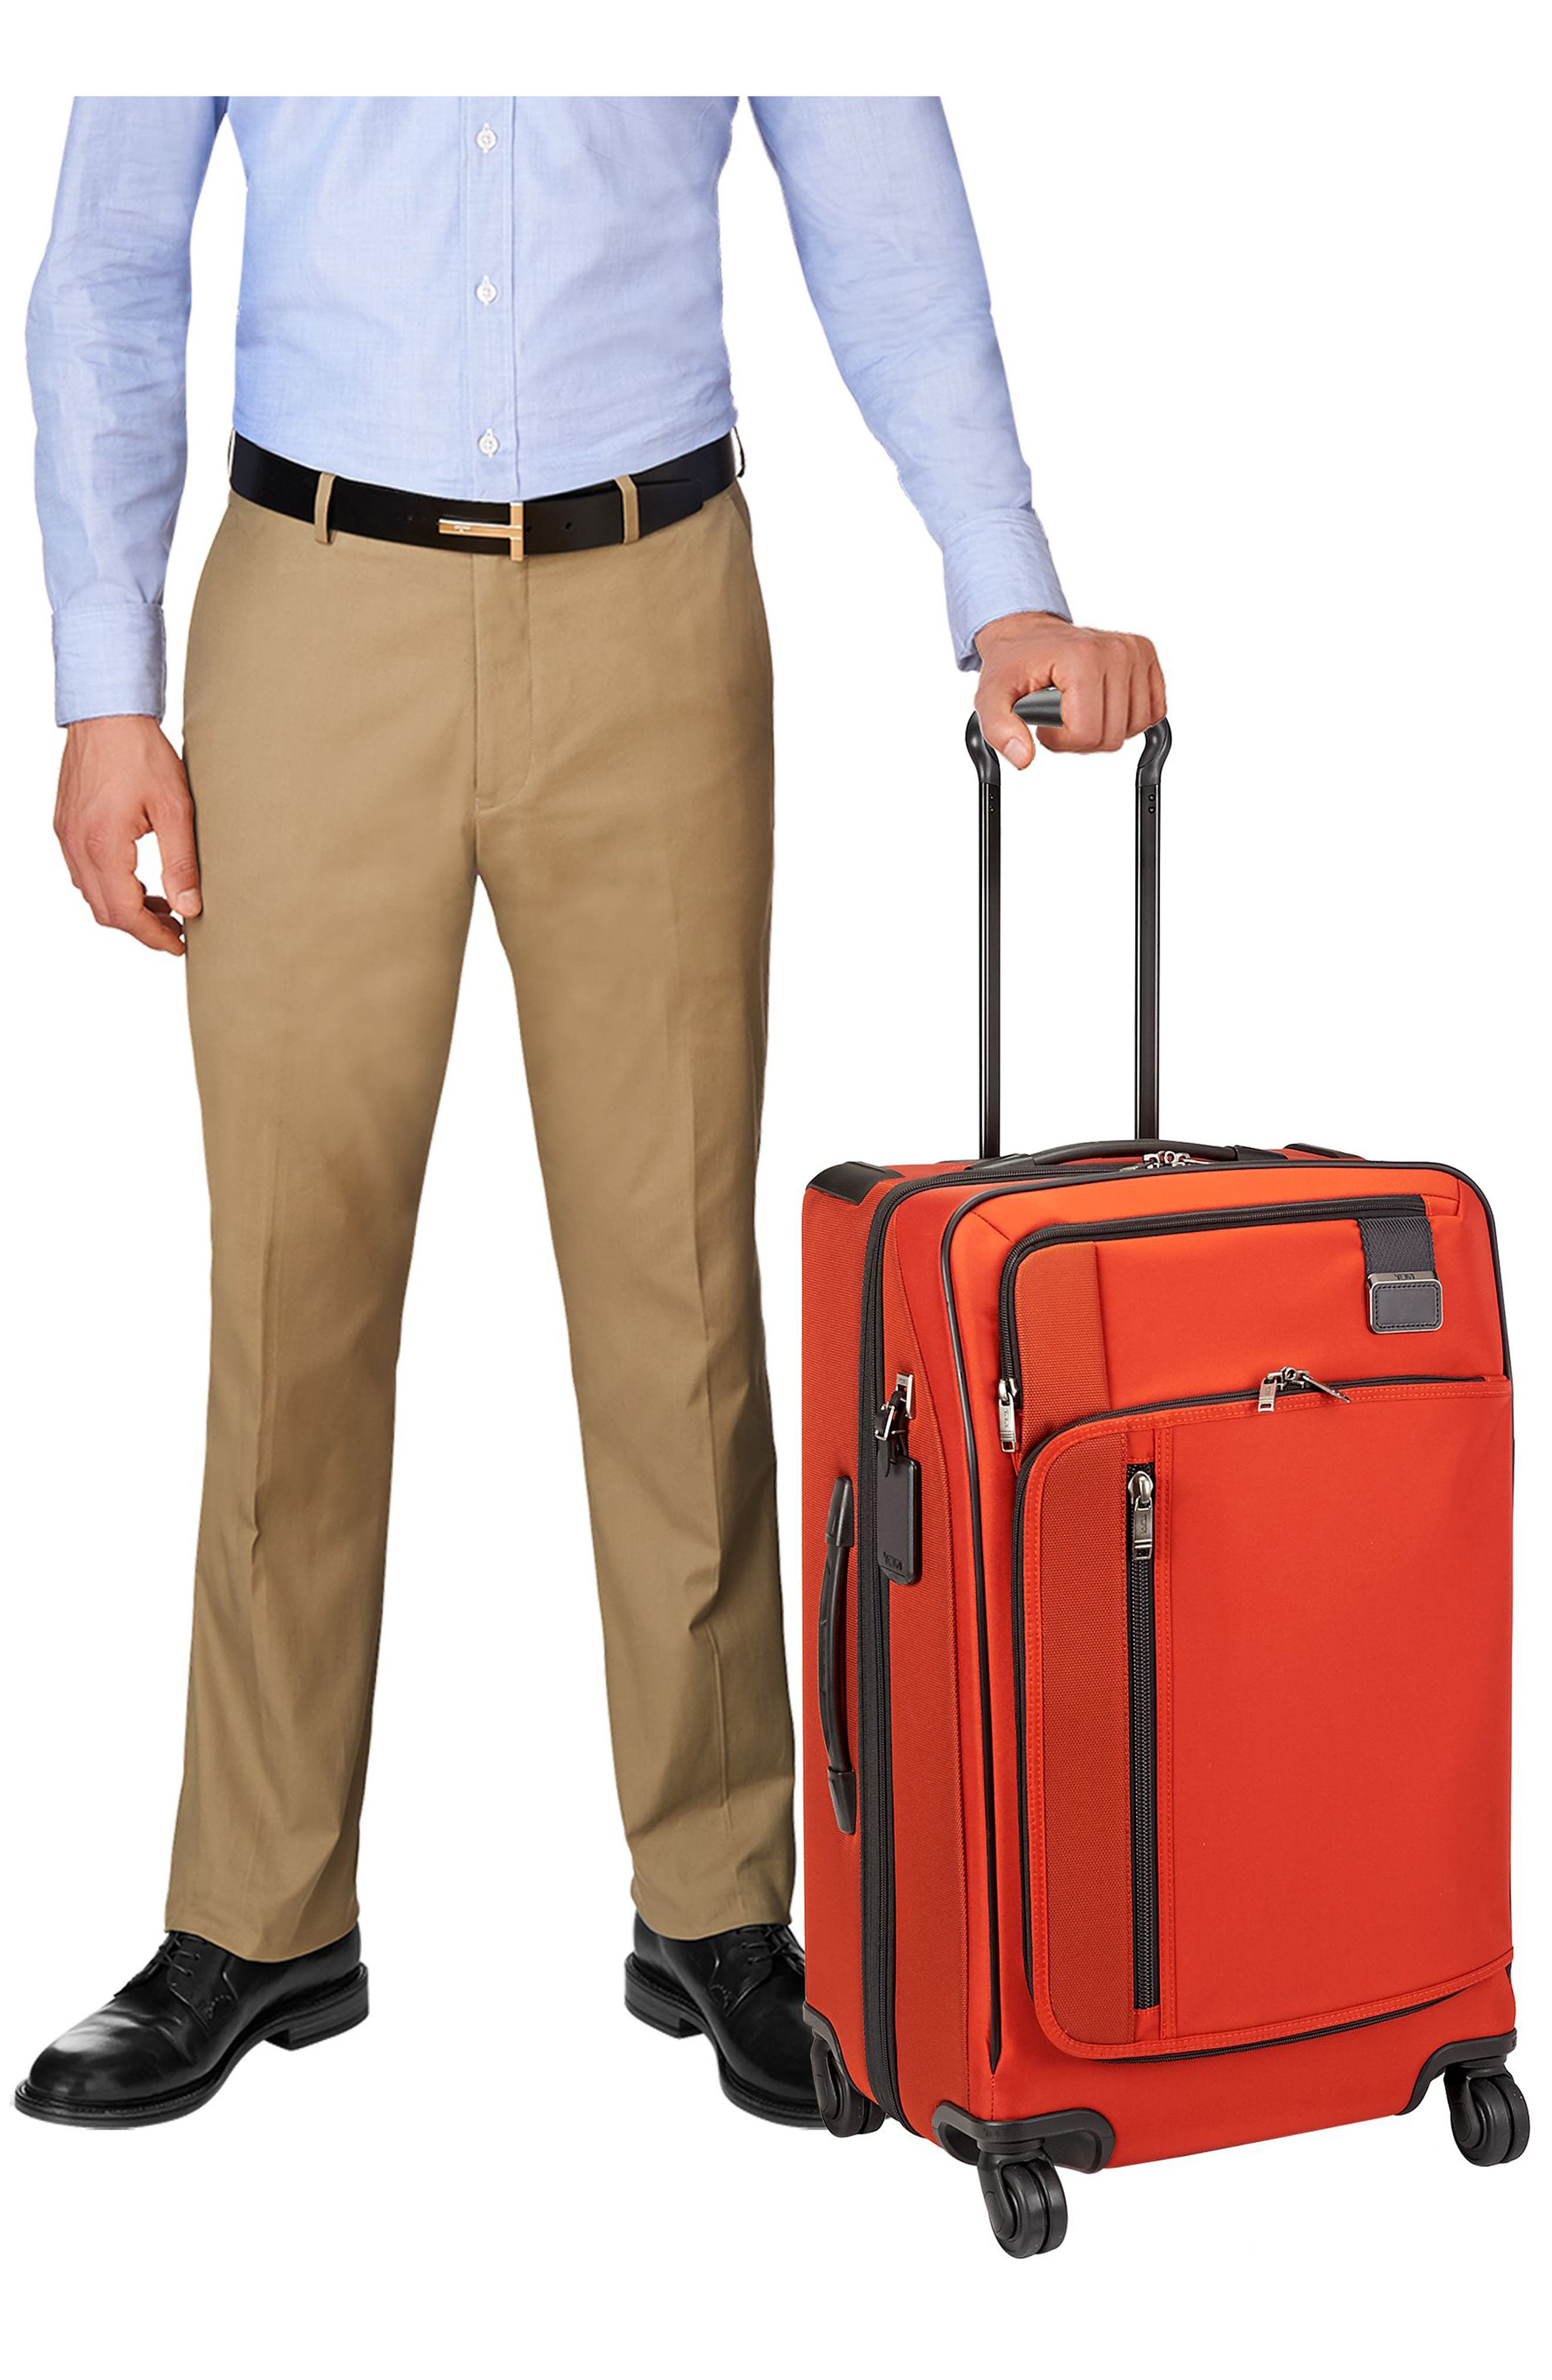 Merge - Short Trip Expandable Rolling Suitcase,                             Alternate thumbnail 6, color,                             SUNSET RED